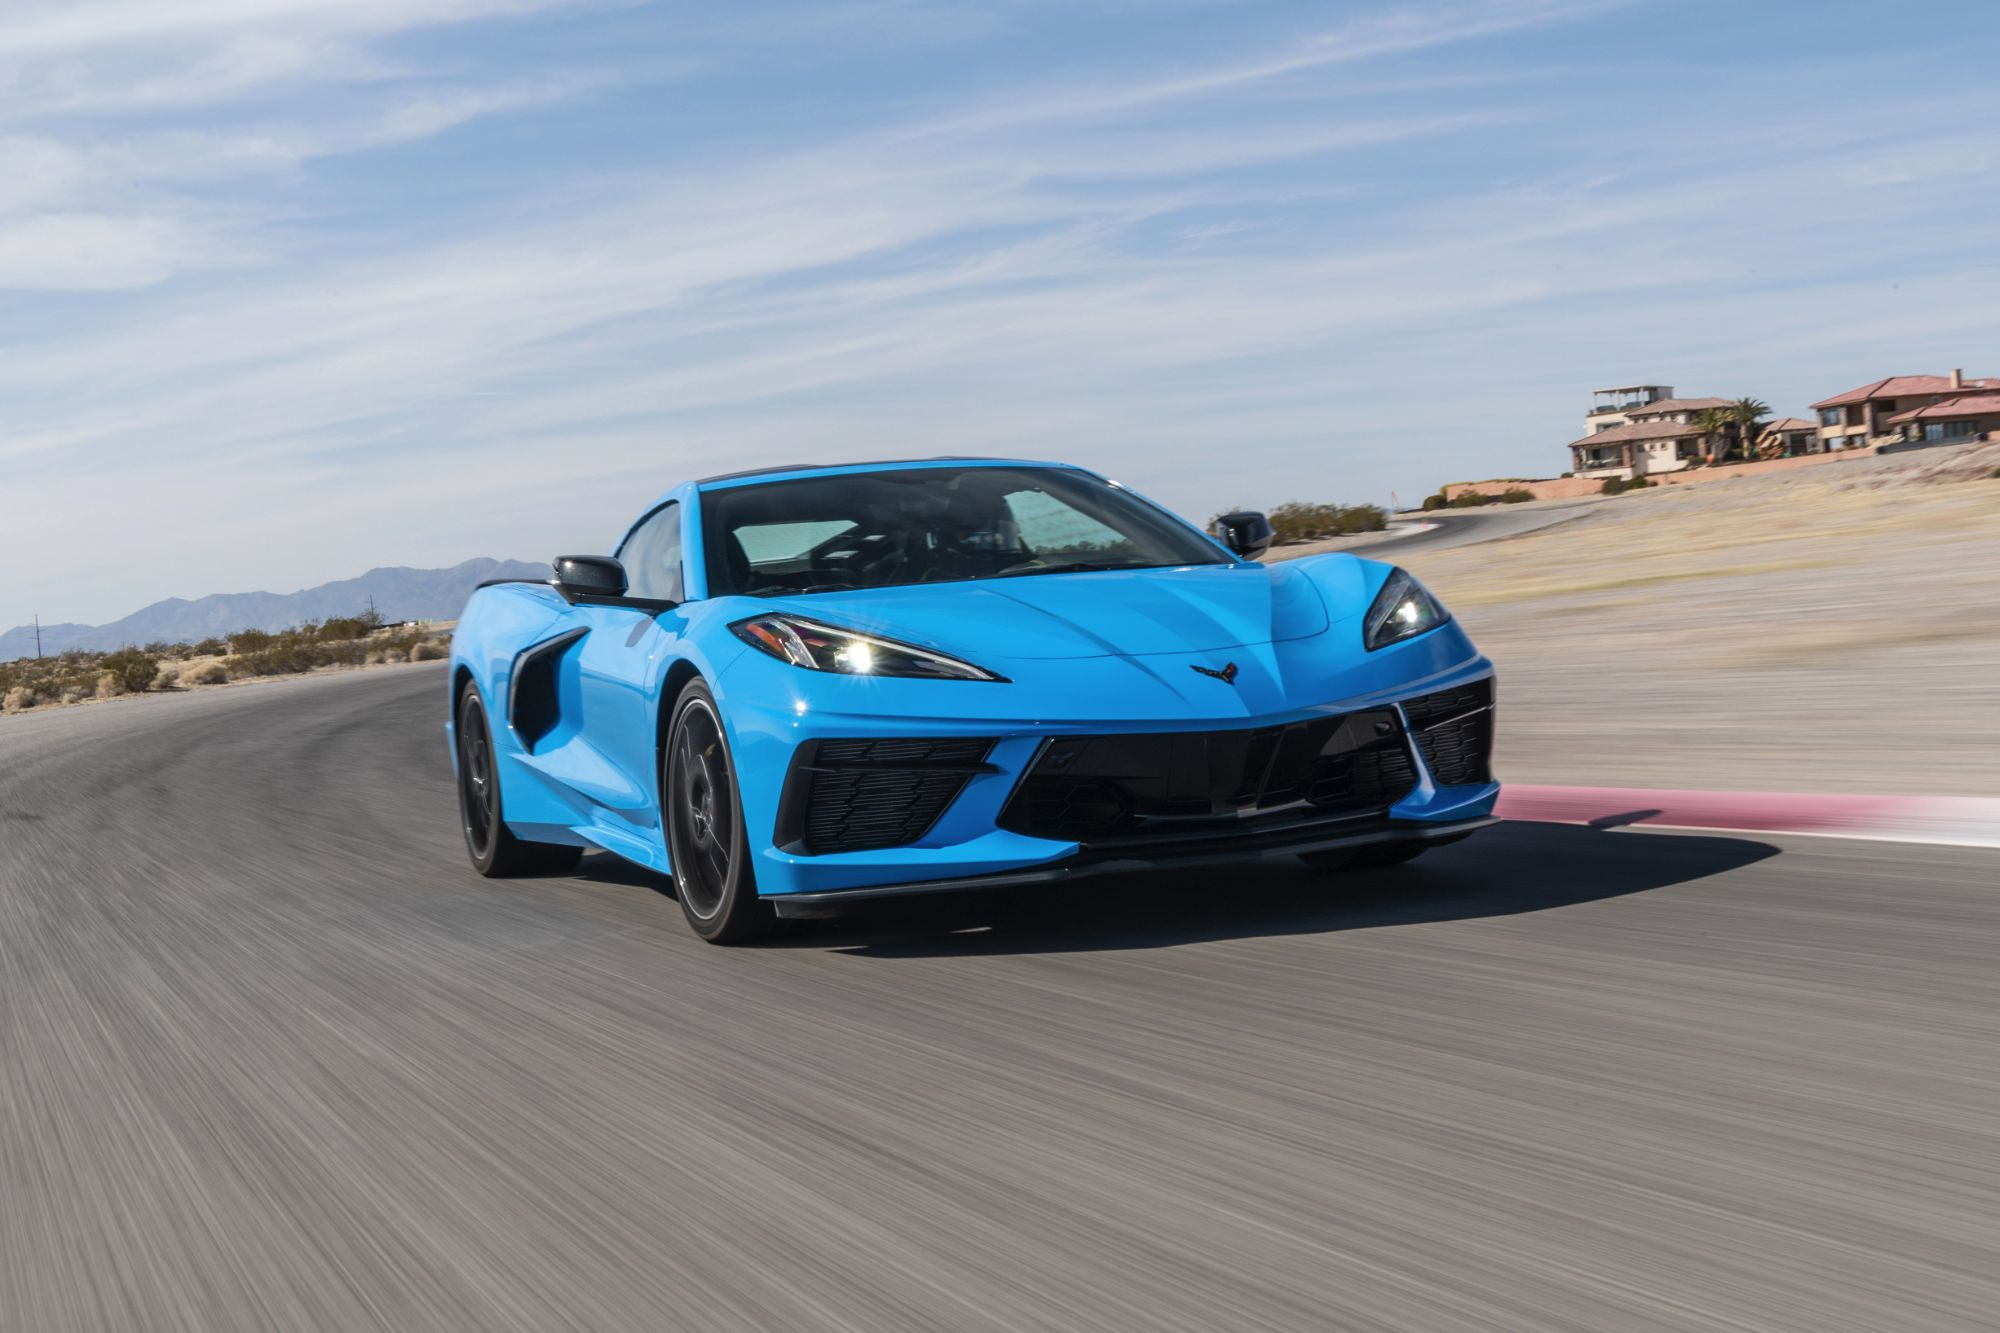 2020-Chevrolet-Corvette-Stingray-247